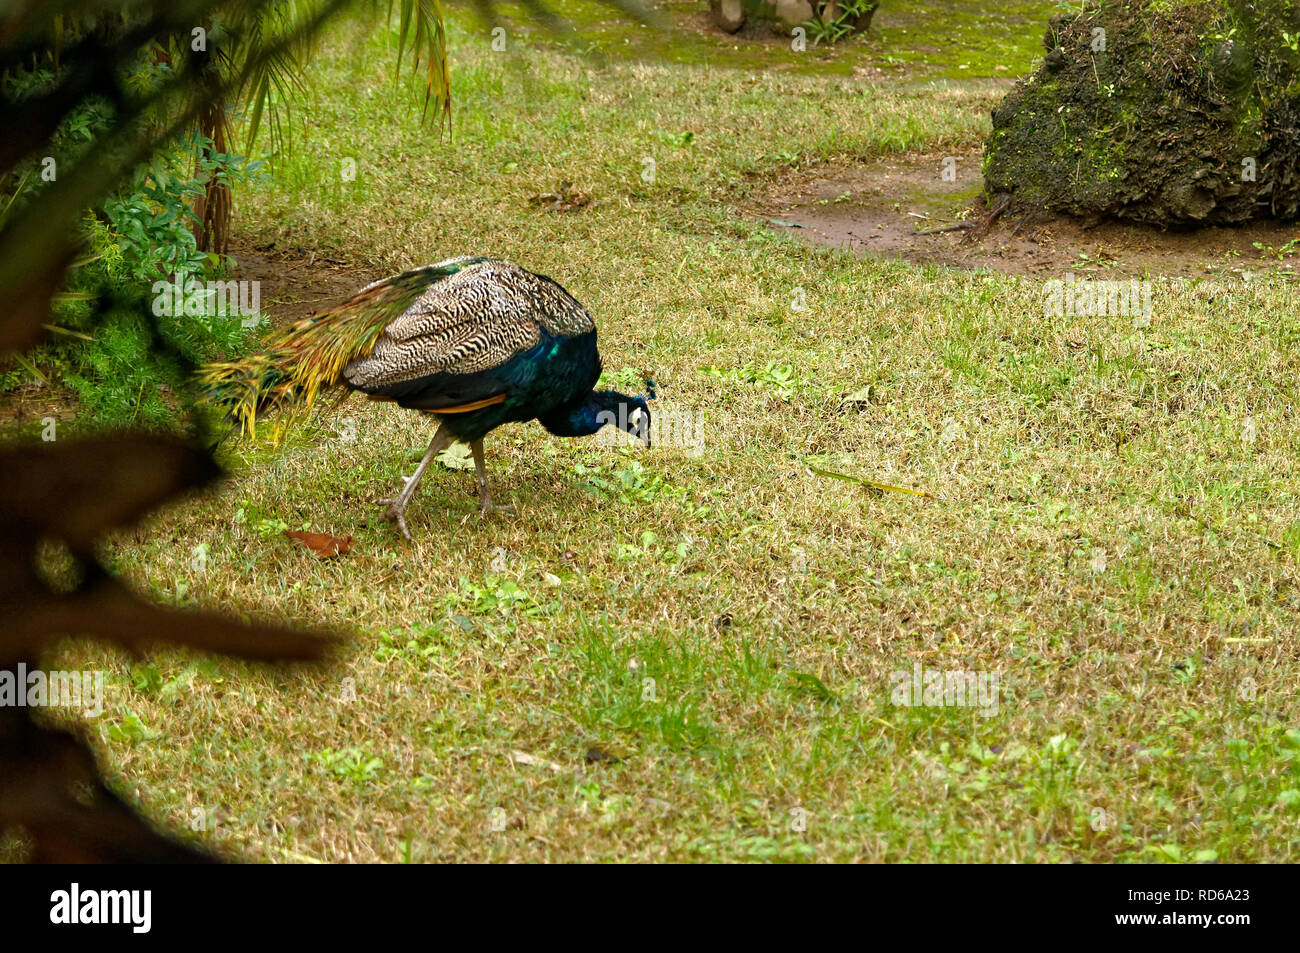 Male peafowl (peacock) walking on the grass in a park.  French Riviera - Stock Image